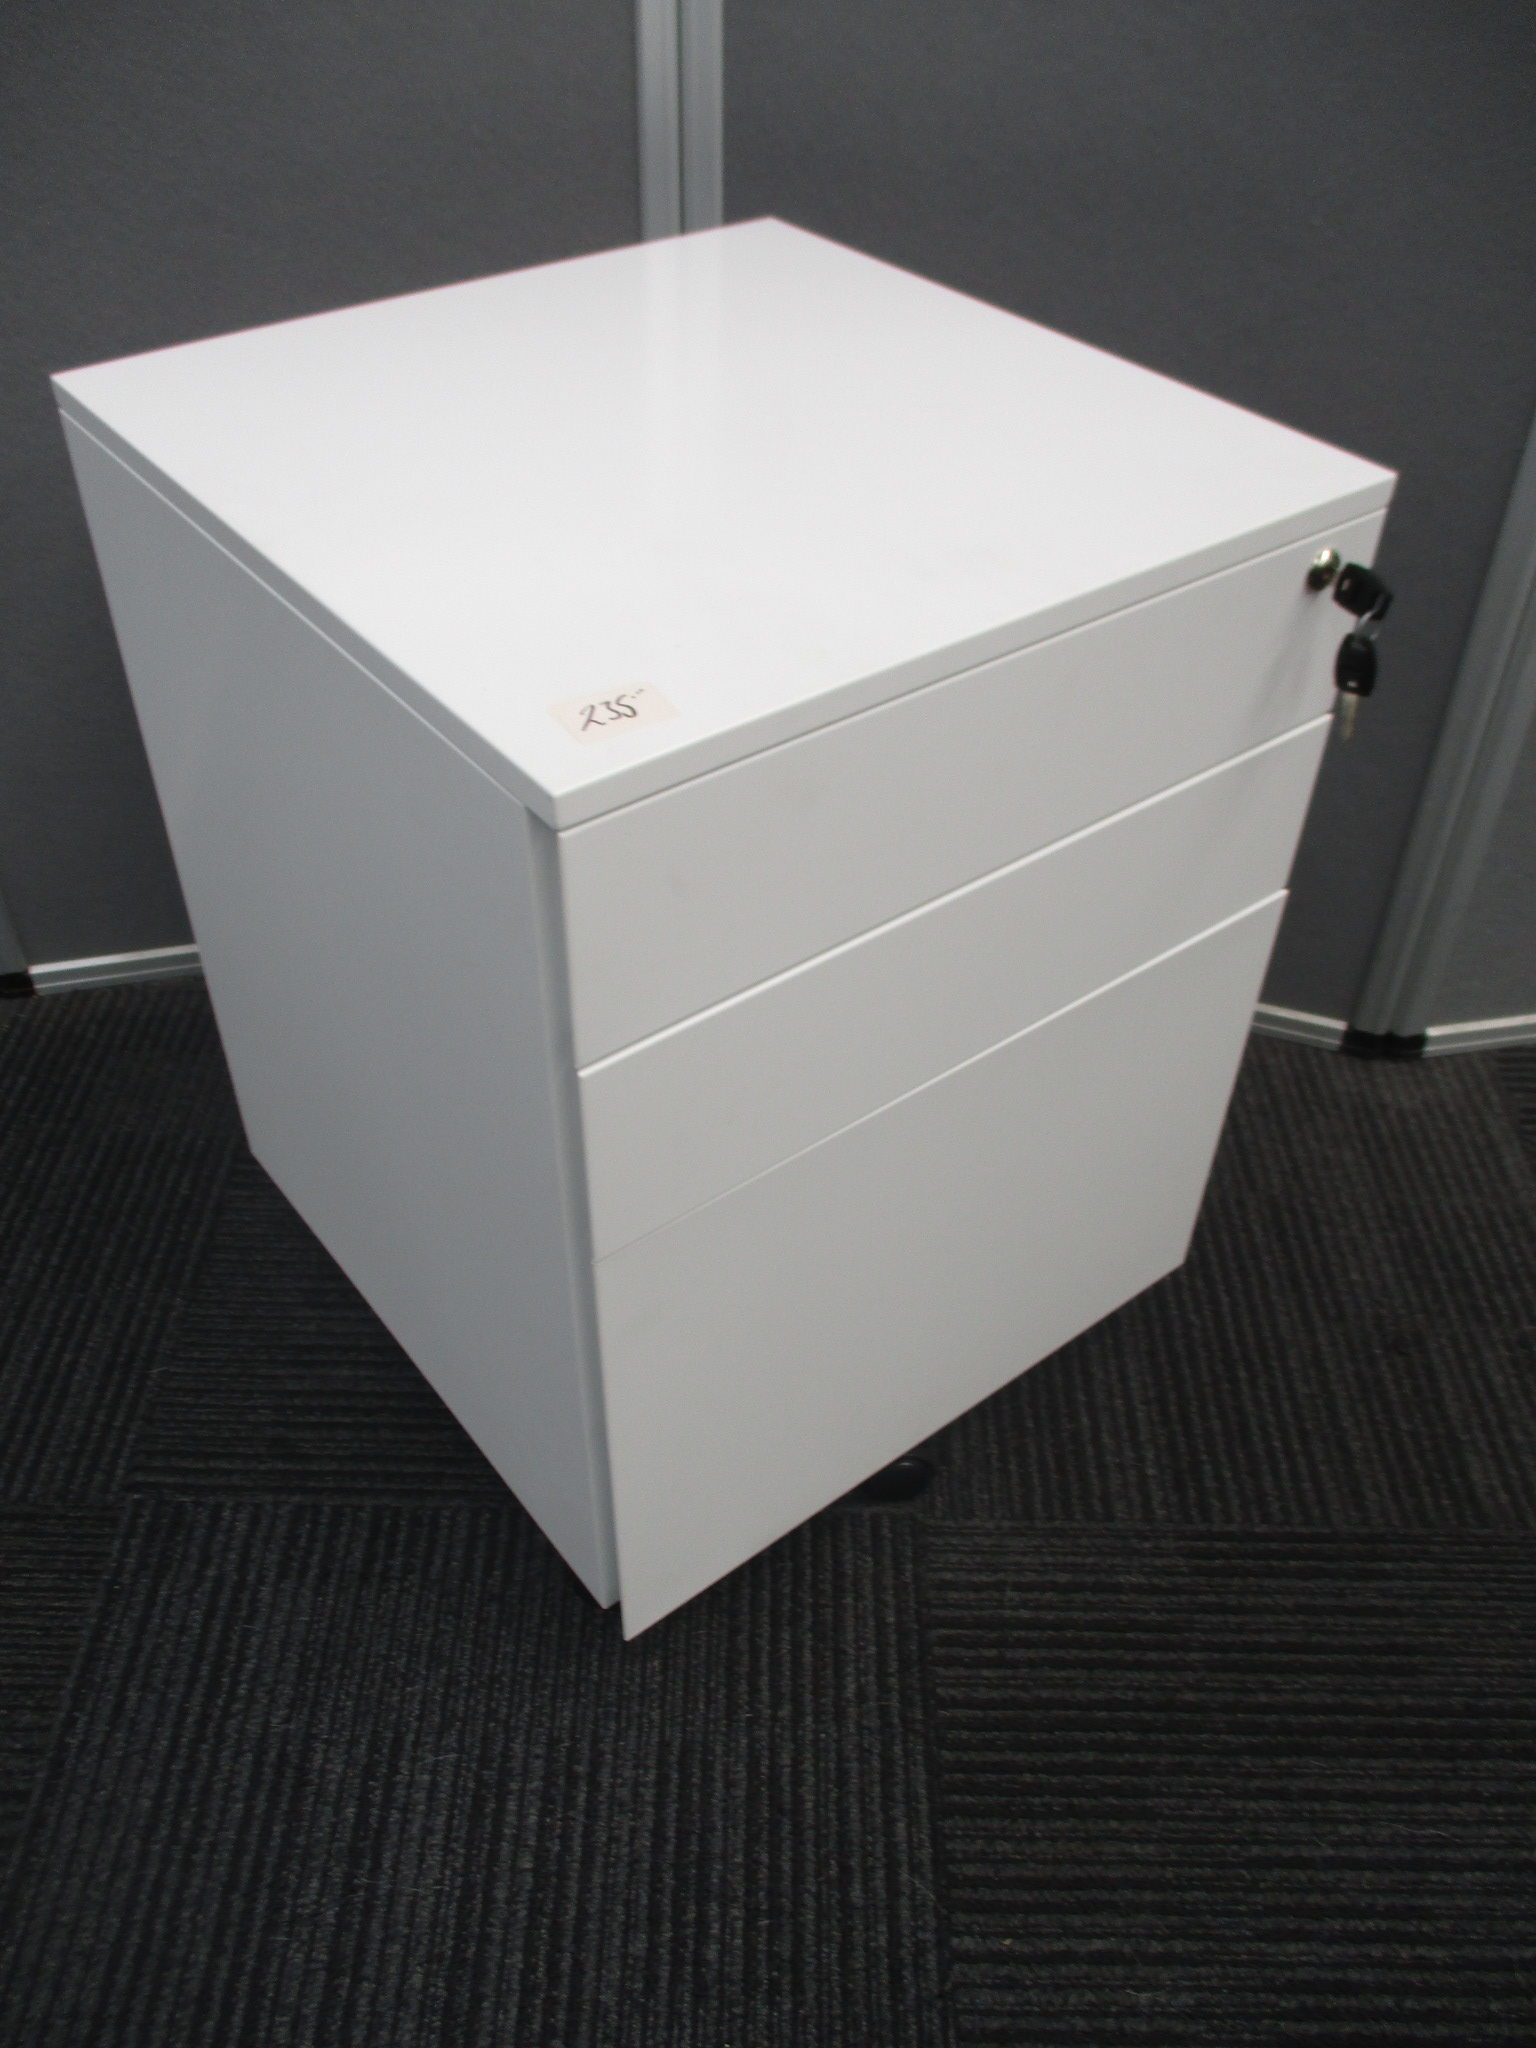 New Rapid White Steel 3 Drawer Mobile Pedestals $235